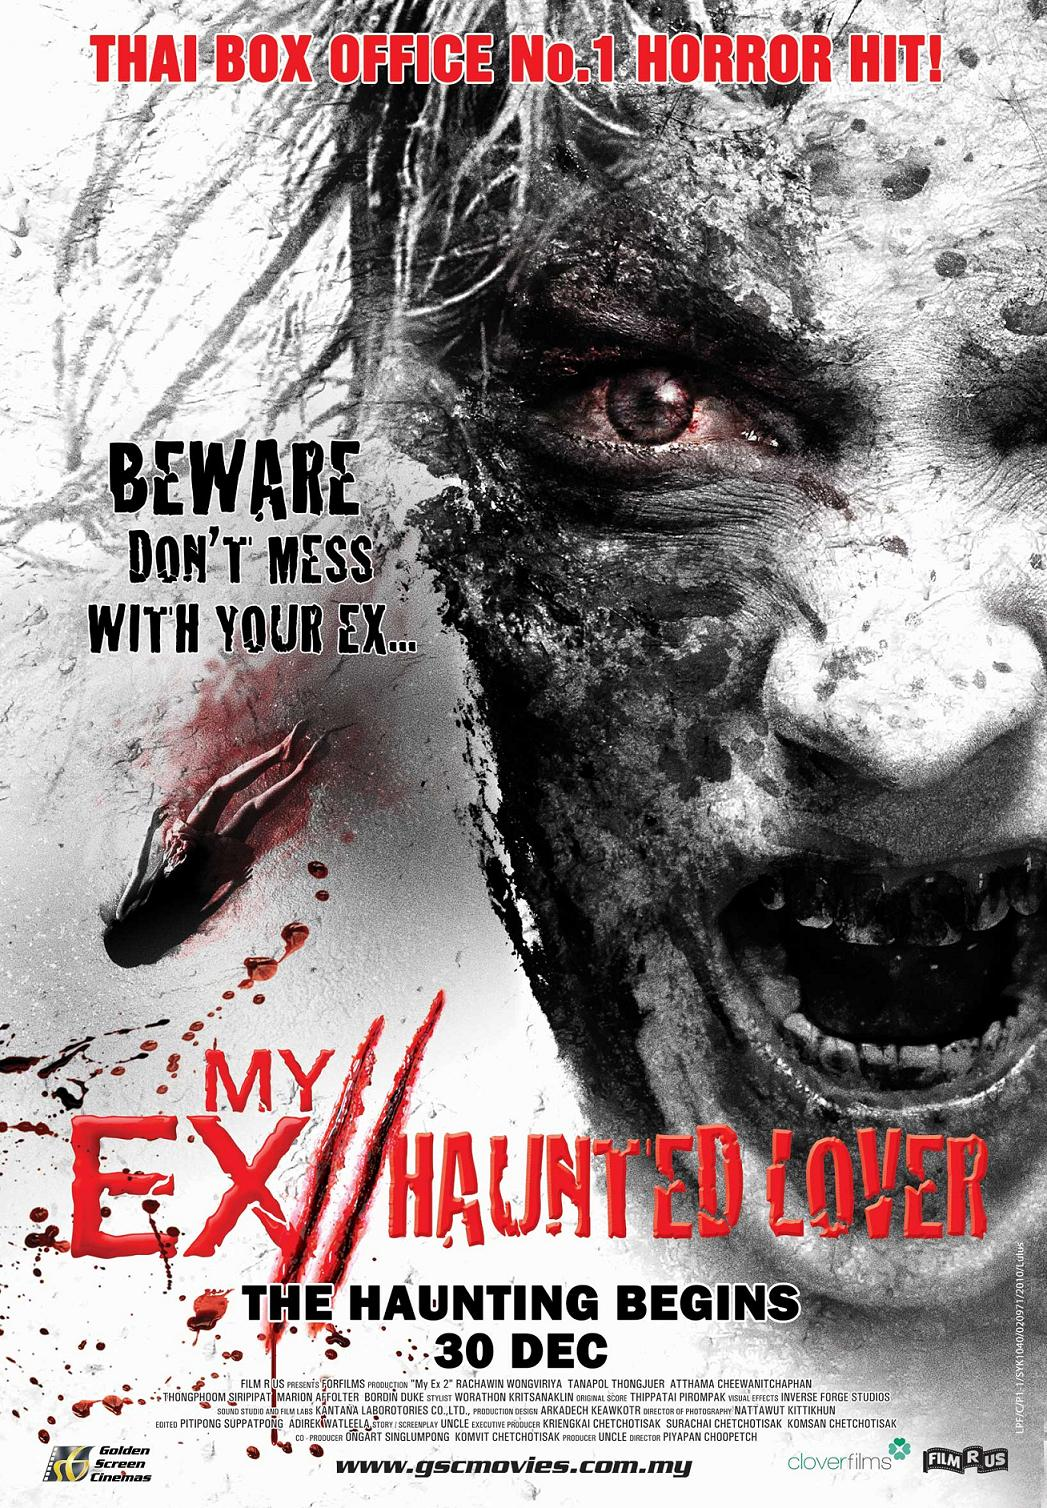 review horror movie my ex haunted lover from thailand by badin duke marion affolter and pete thong-jeur